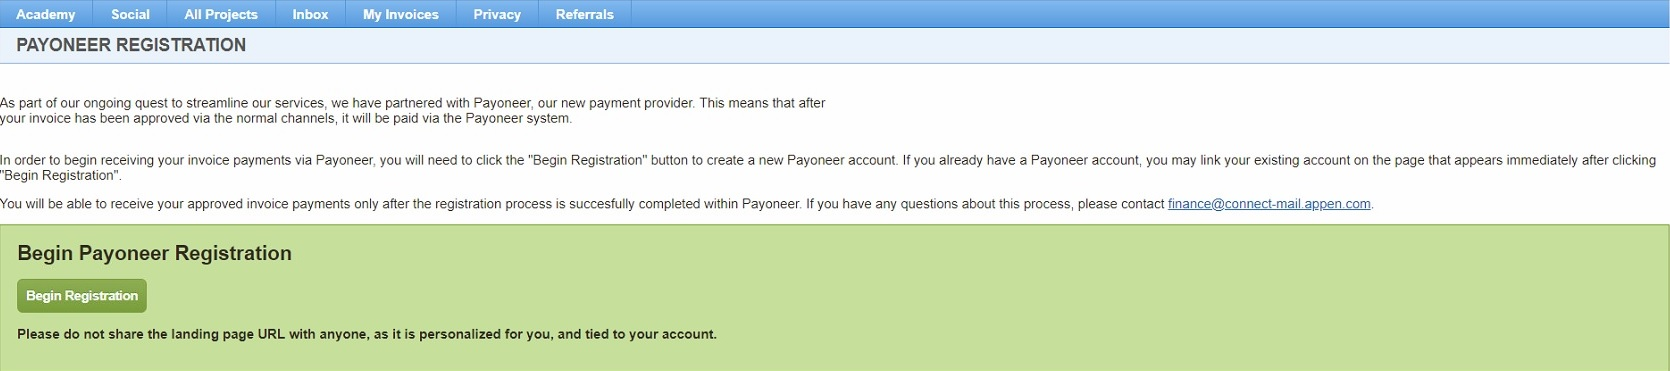 appen adding already existing payoneer account as payment